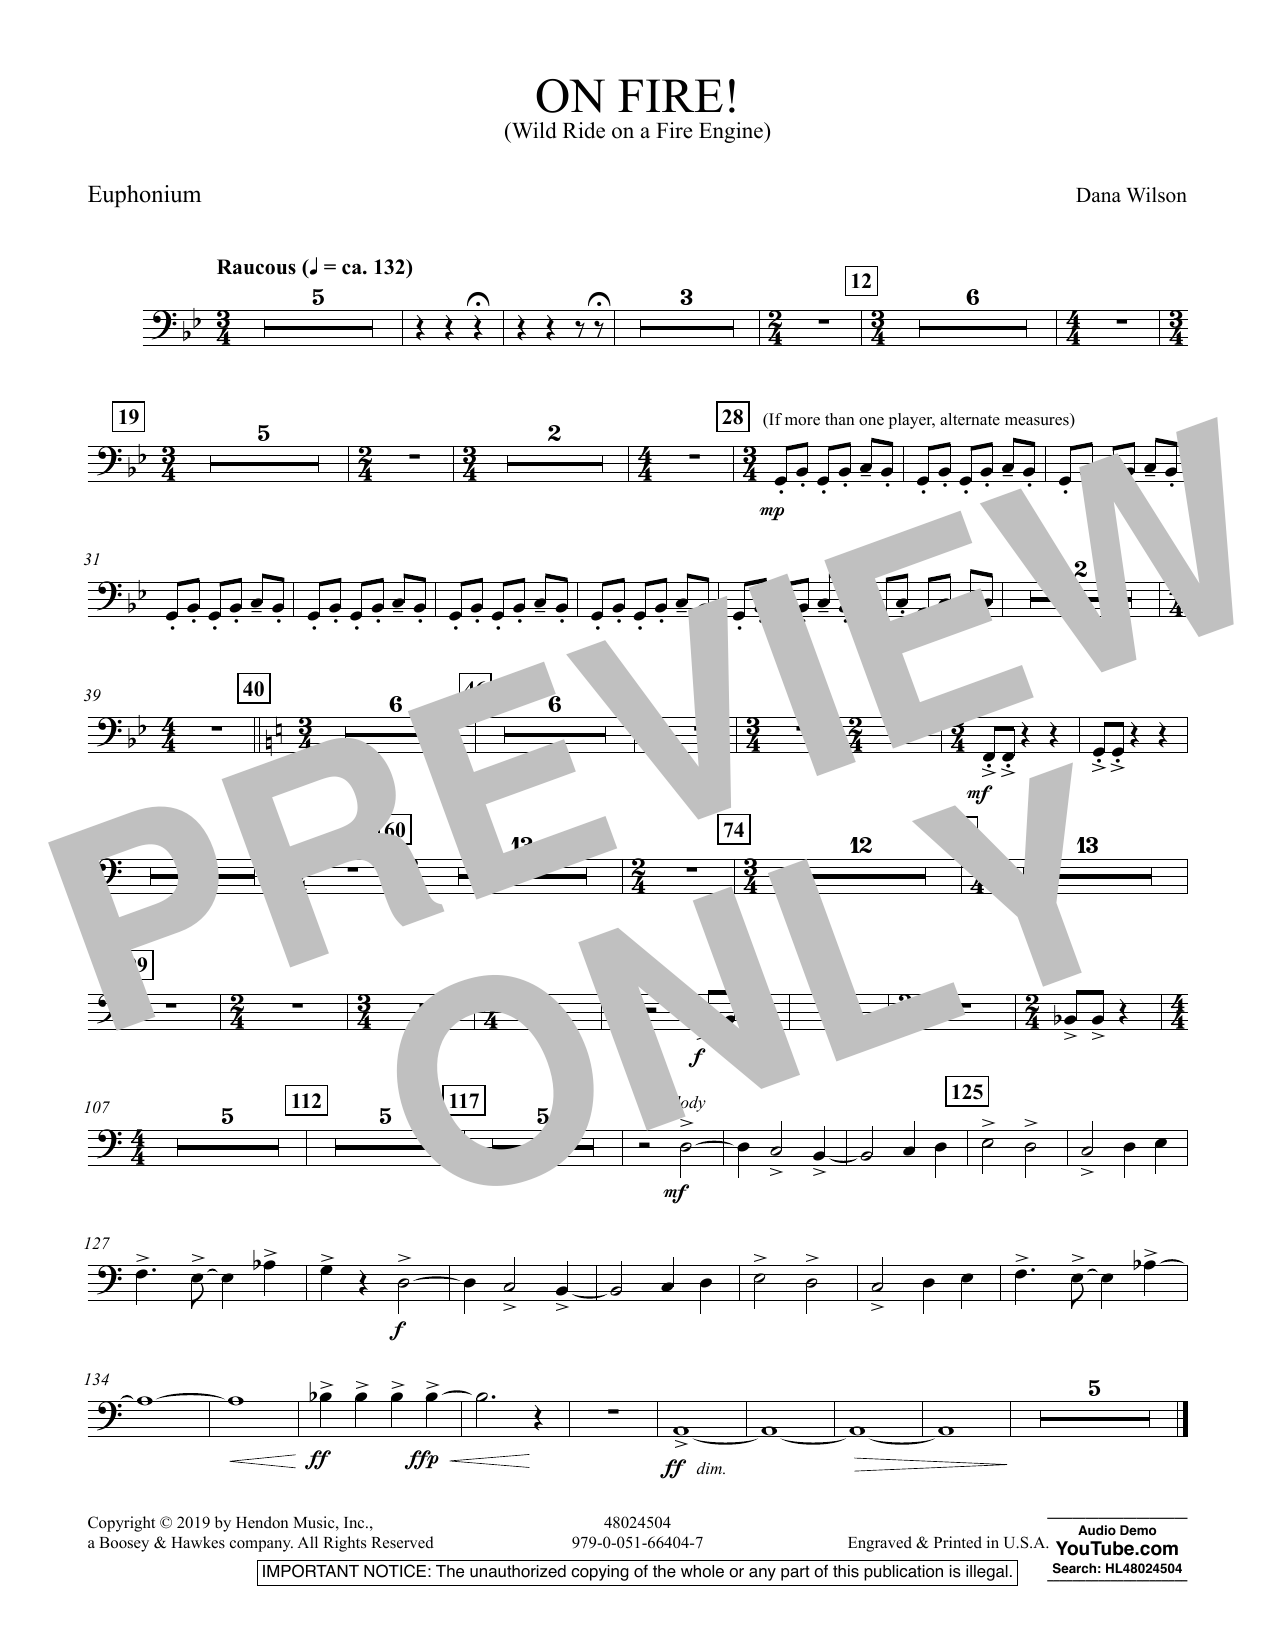 On Fire! (Wild Ride on a Fire Engine) - Euphonium (Concert Band)